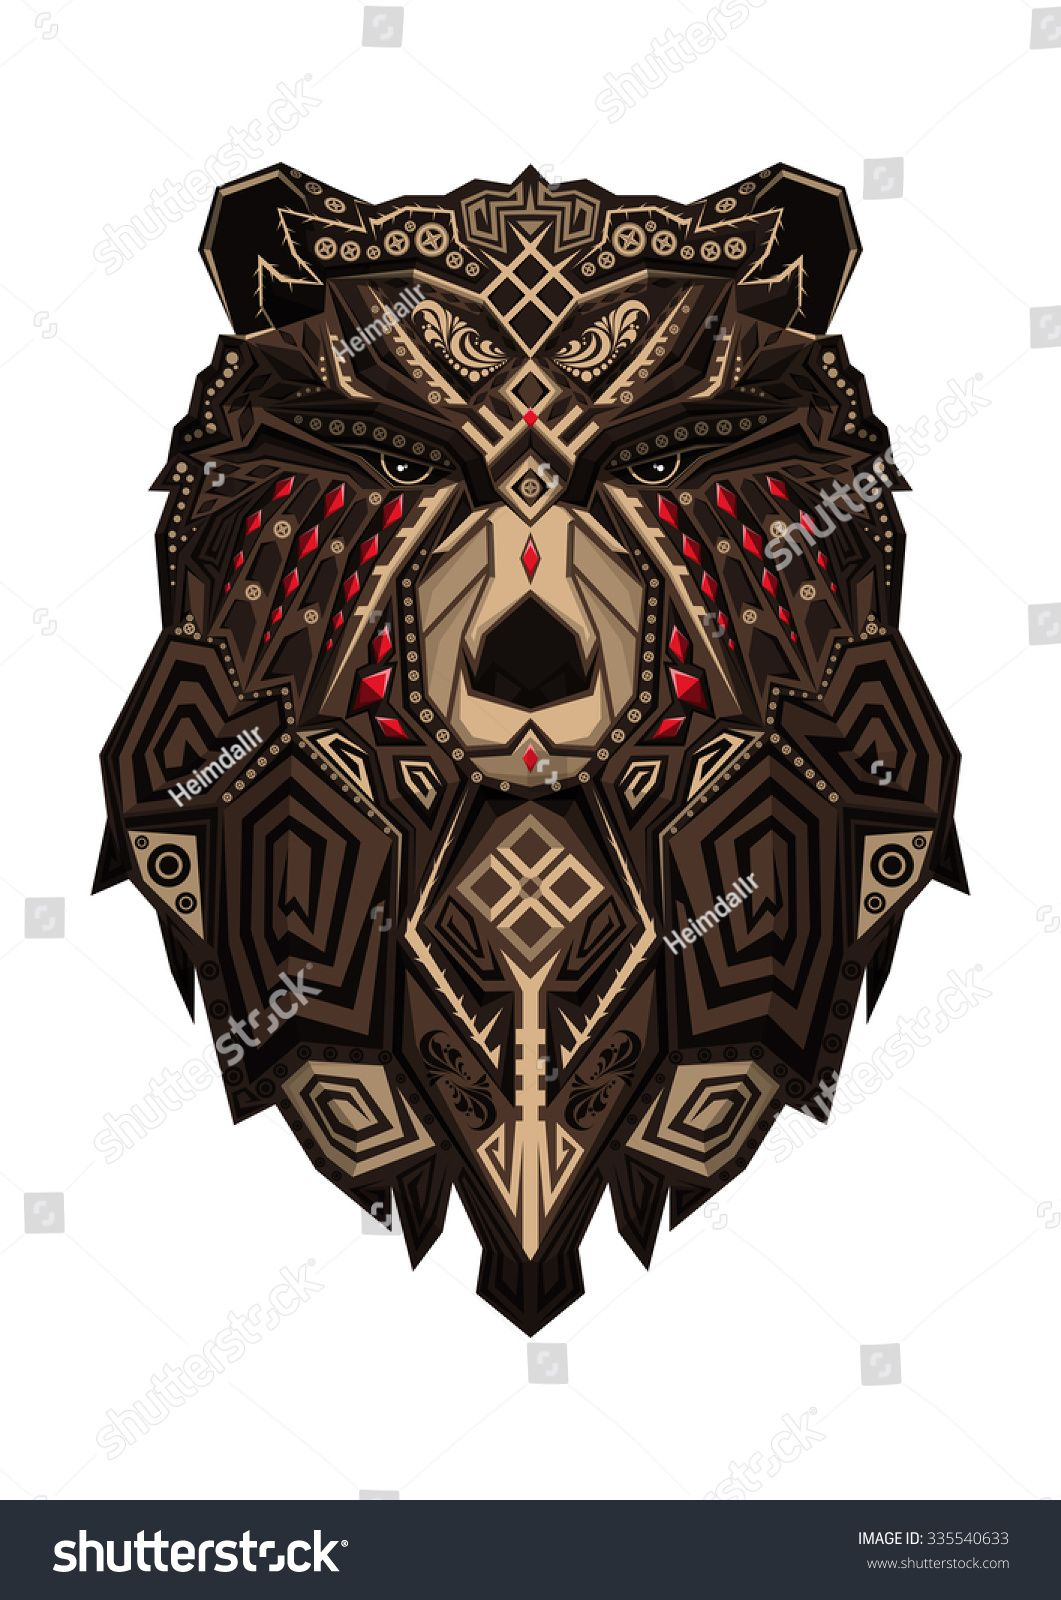 Pin By Grimodin On Tattoo Bear Tattoo Designs Bear Tattoos Tribal Bear Tattoo